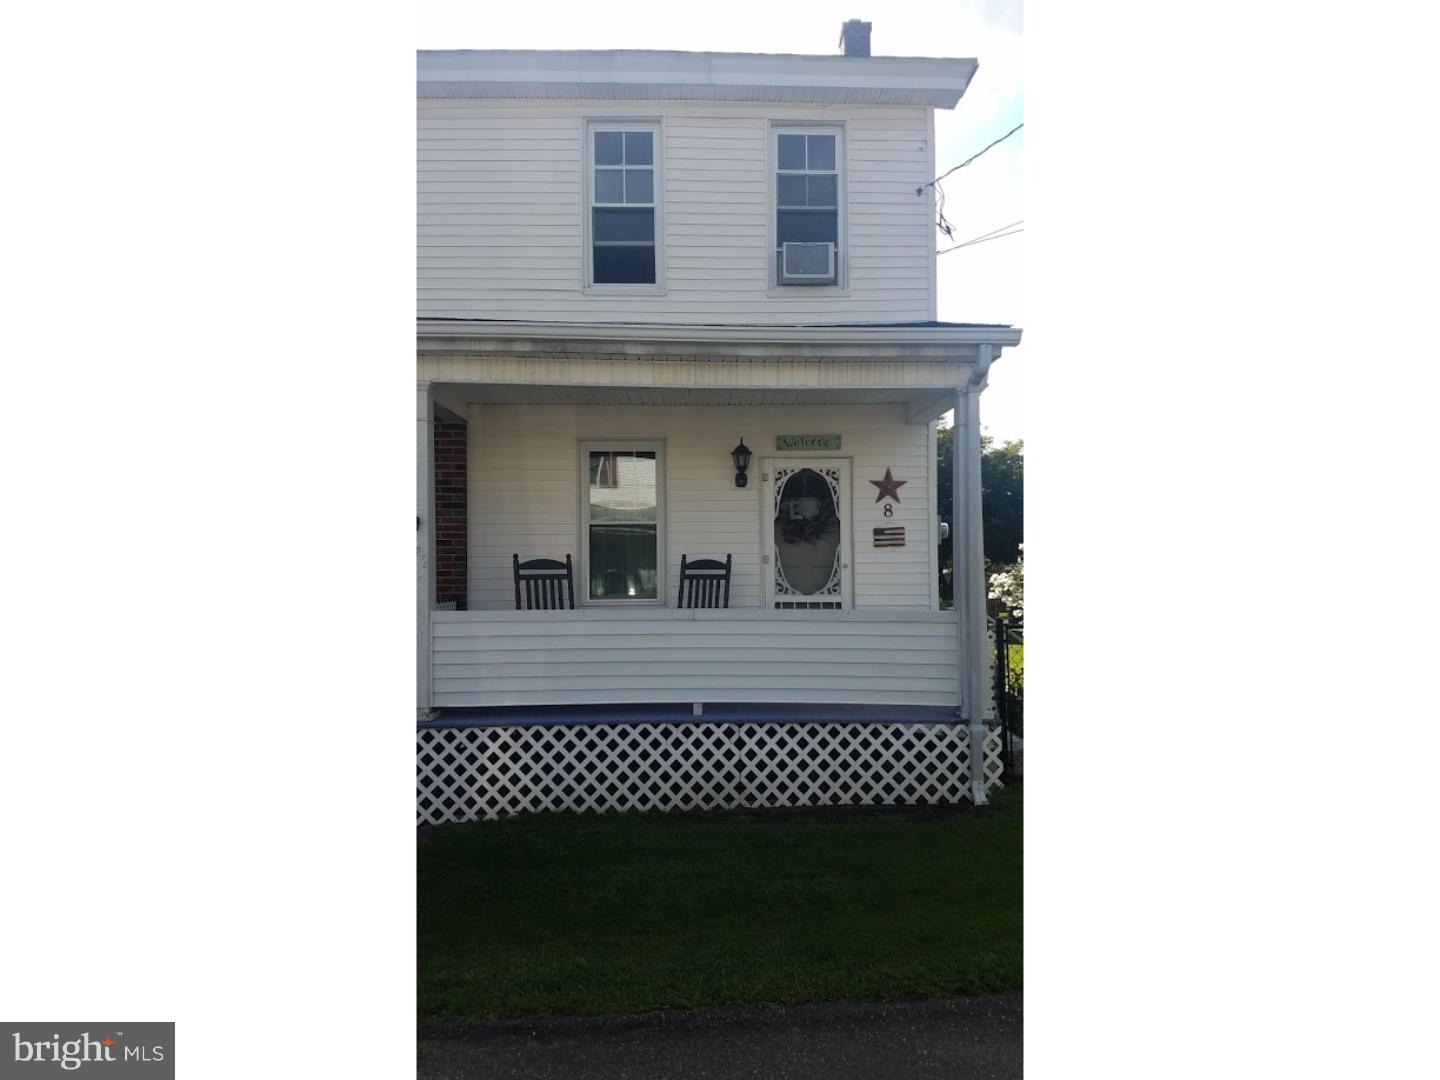 Single Family Home for Sale at 8 WILLOW Lane Pottsville, Pennsylvania 17901 United States